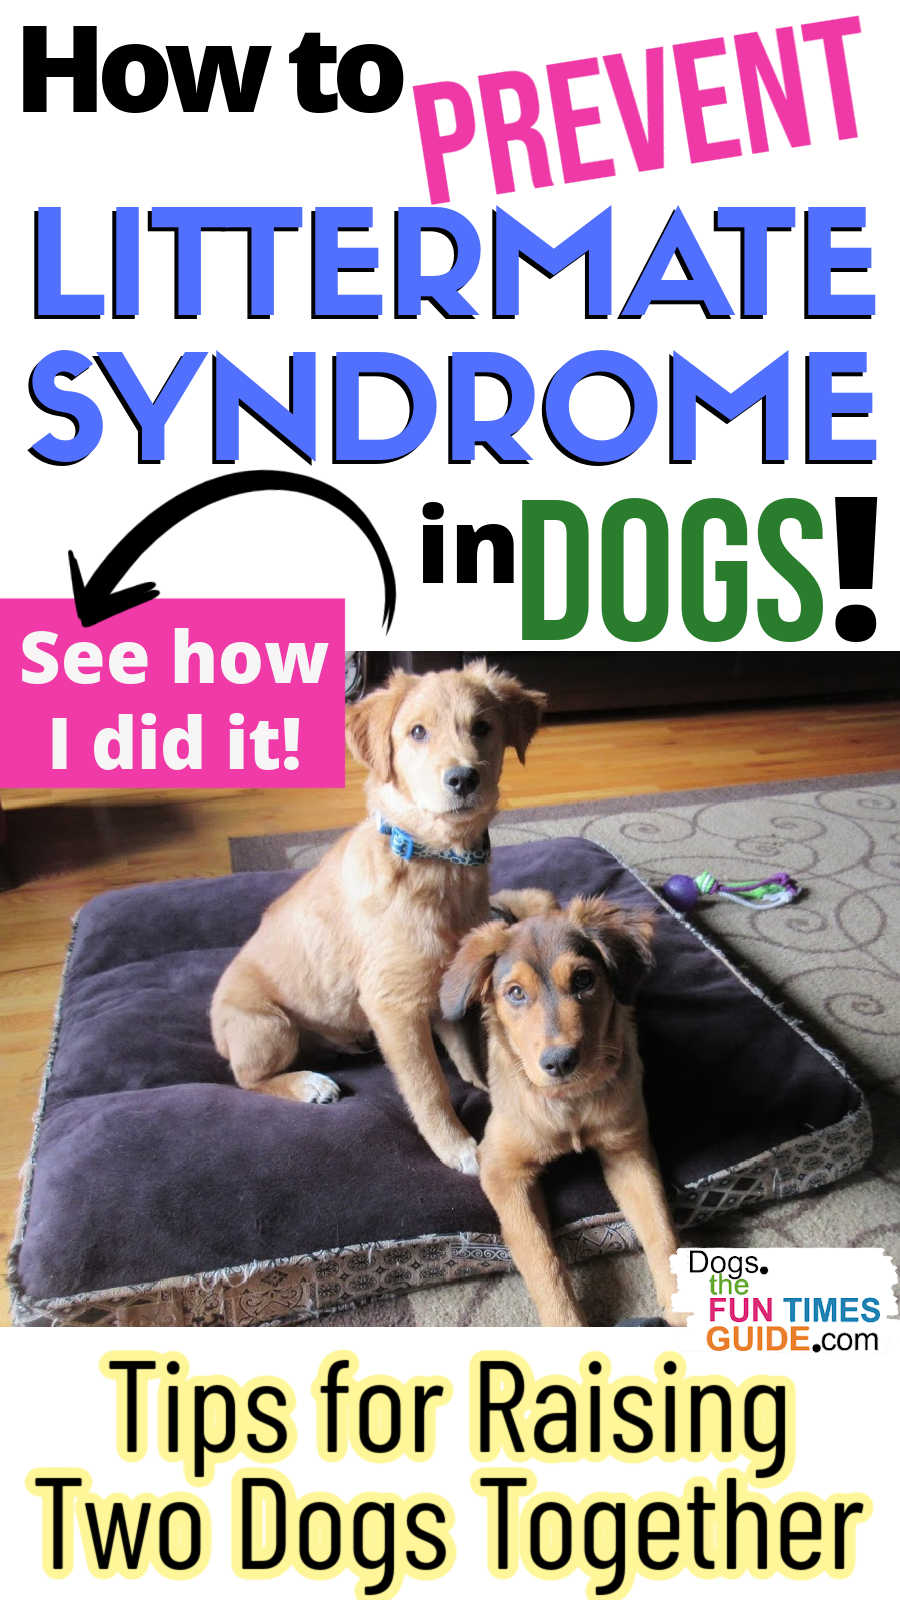 Preventing Littermate Syndrome In Dogs: How To Raise Two Puppies (From The Same Litter OR Different Litters) At Once Without Issues